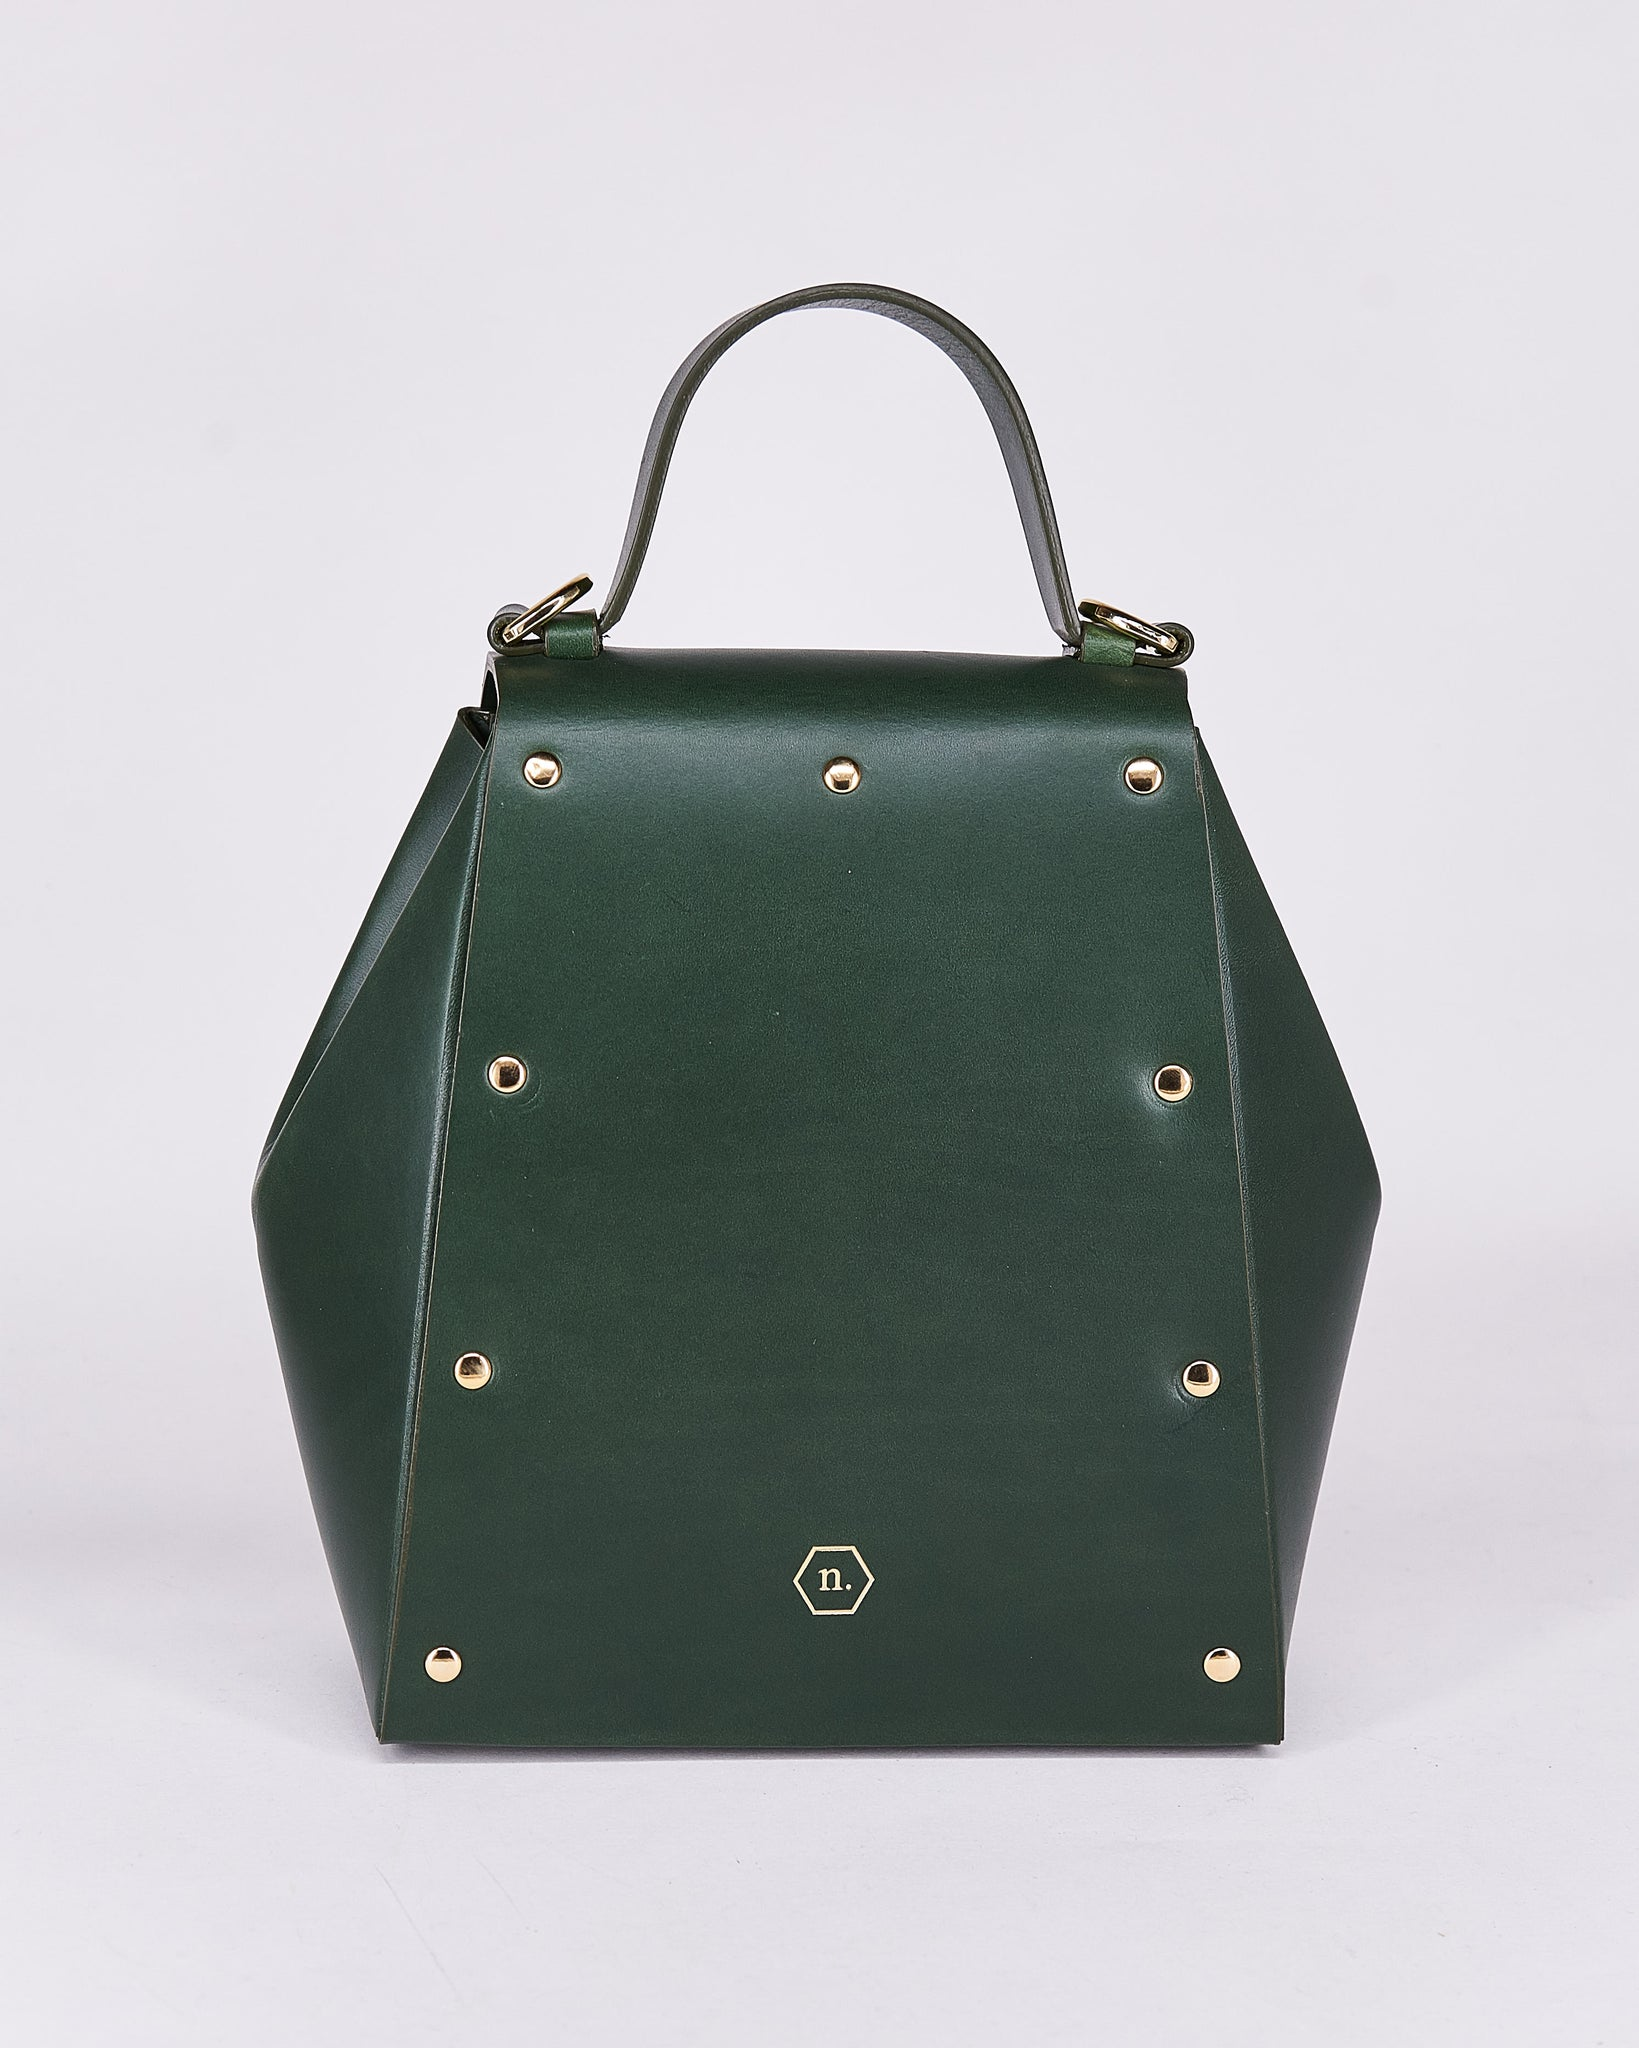 Hex Bag-Green-Leather-Designed by Nuovum-Localdesigners-Barcelona-Back